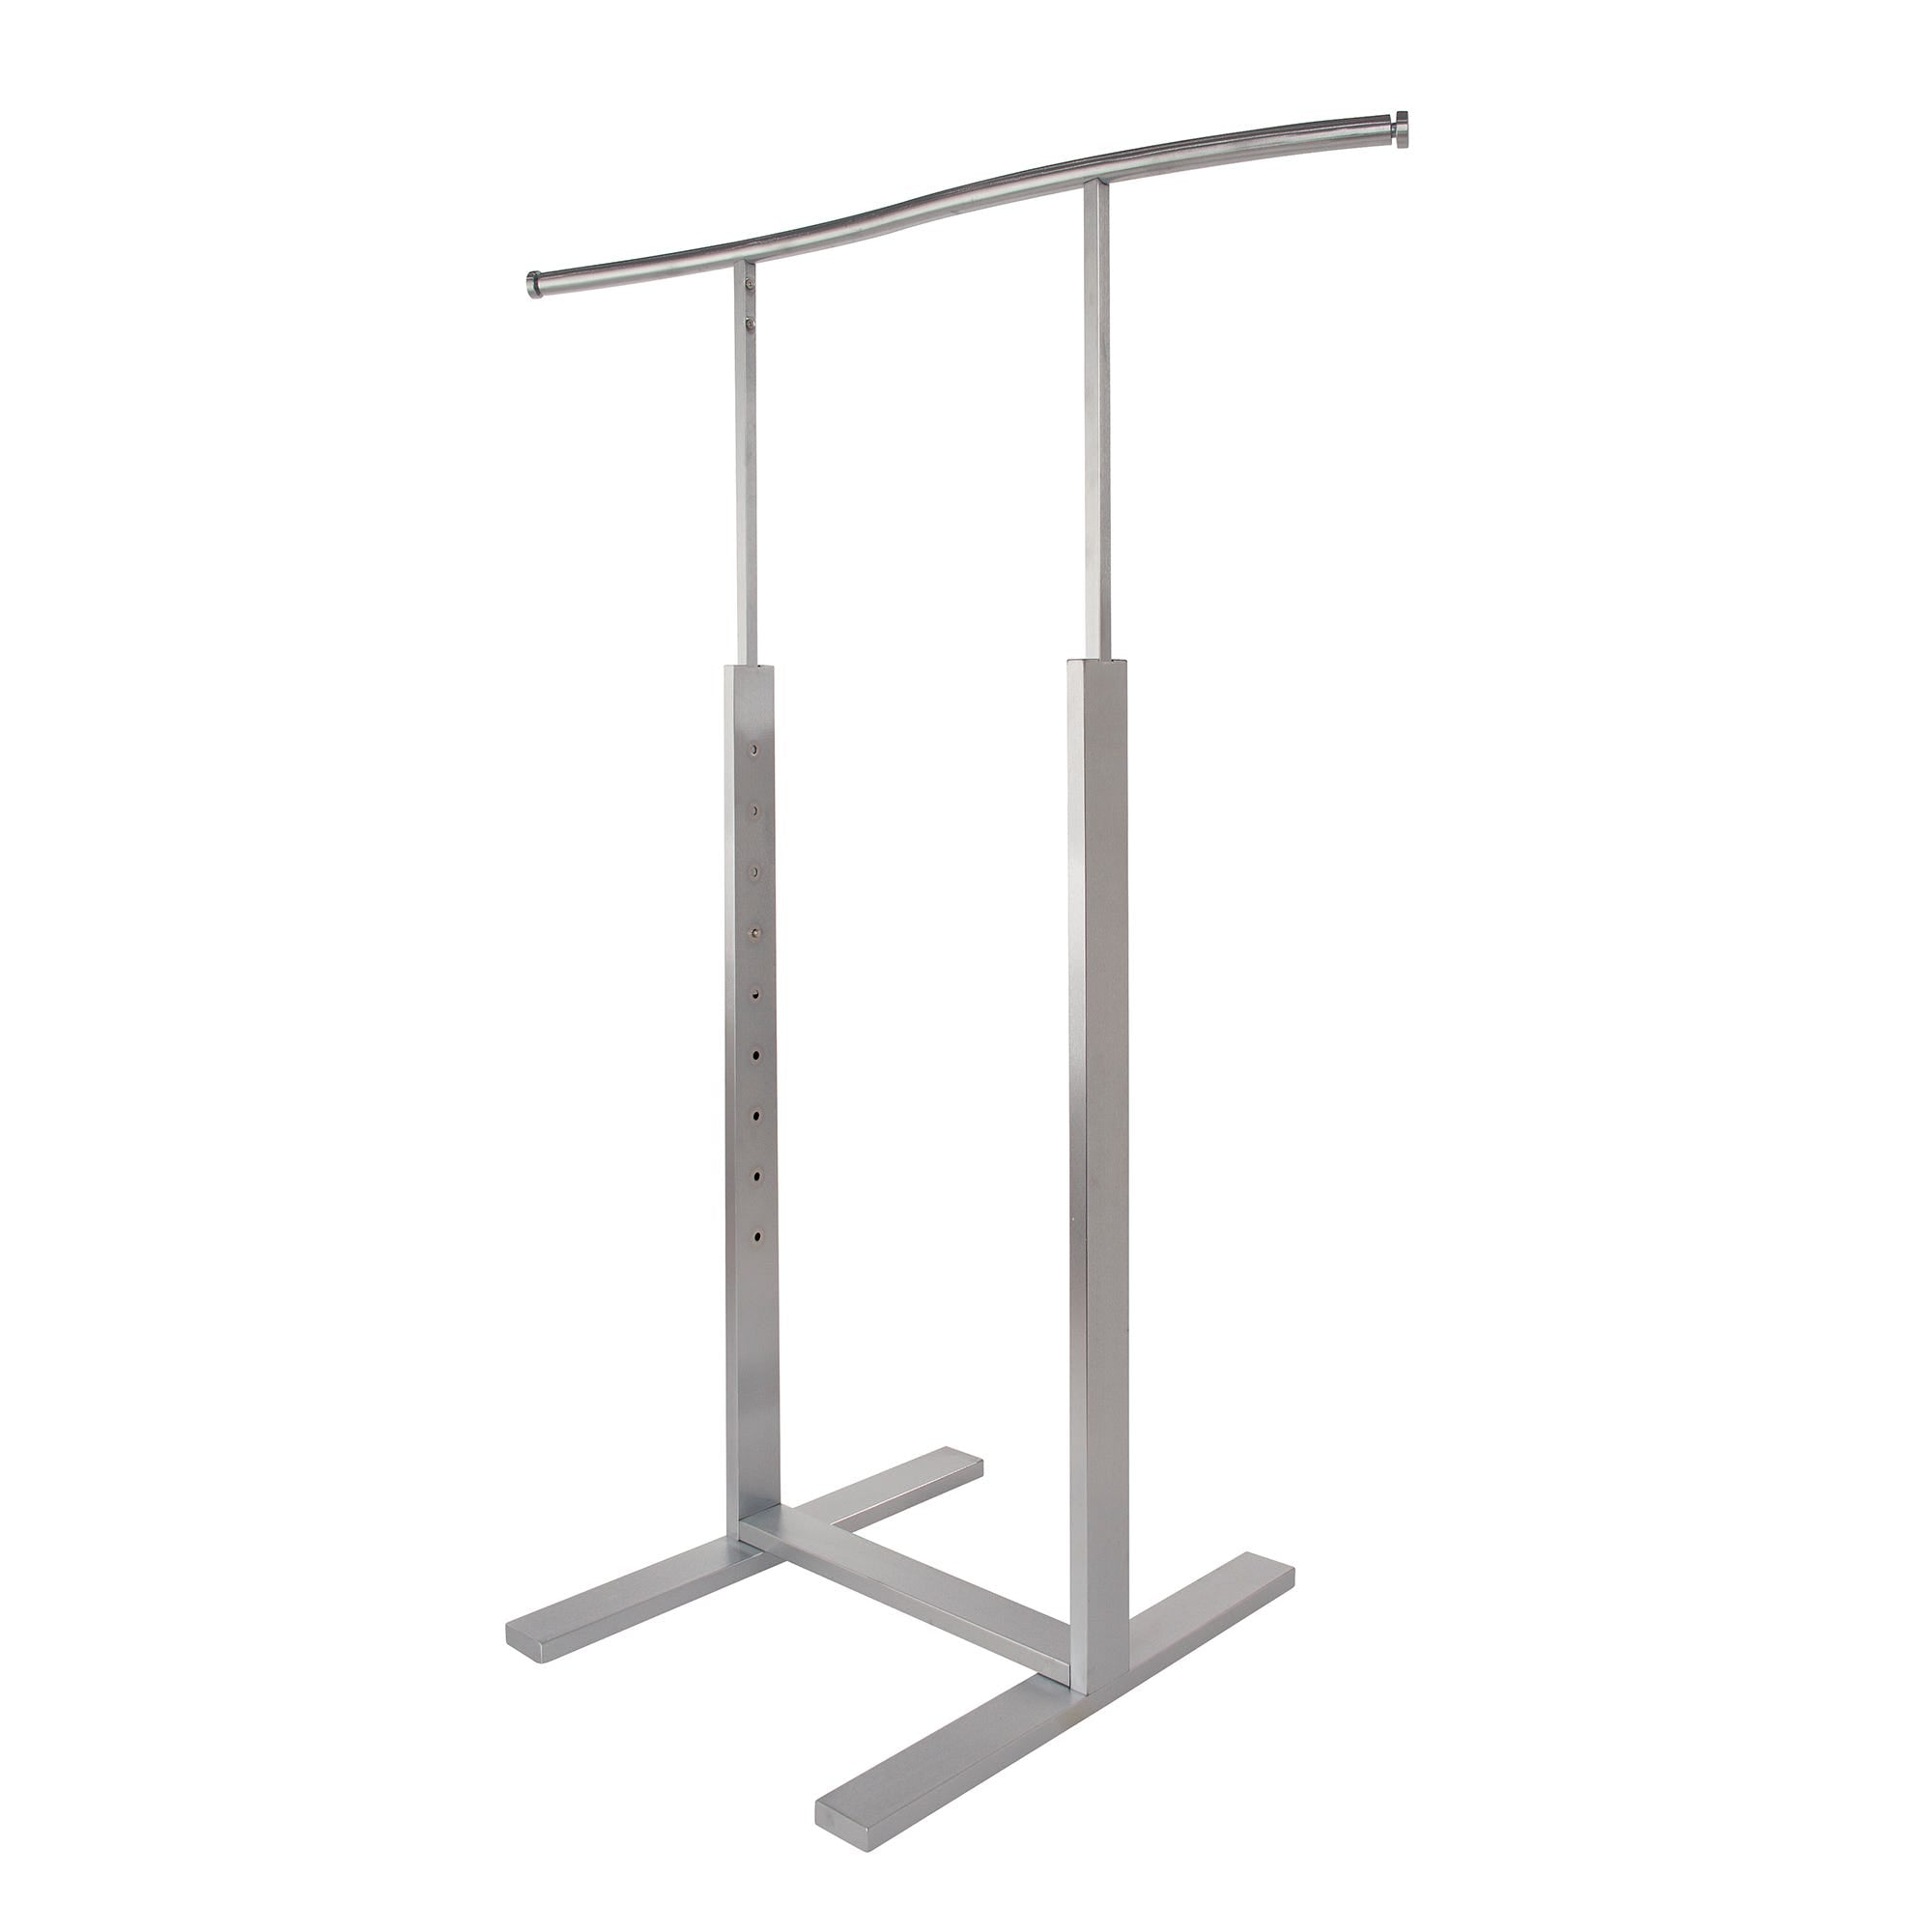 Econoco Single Bar Merchandiser with S-shaped Hang Rail